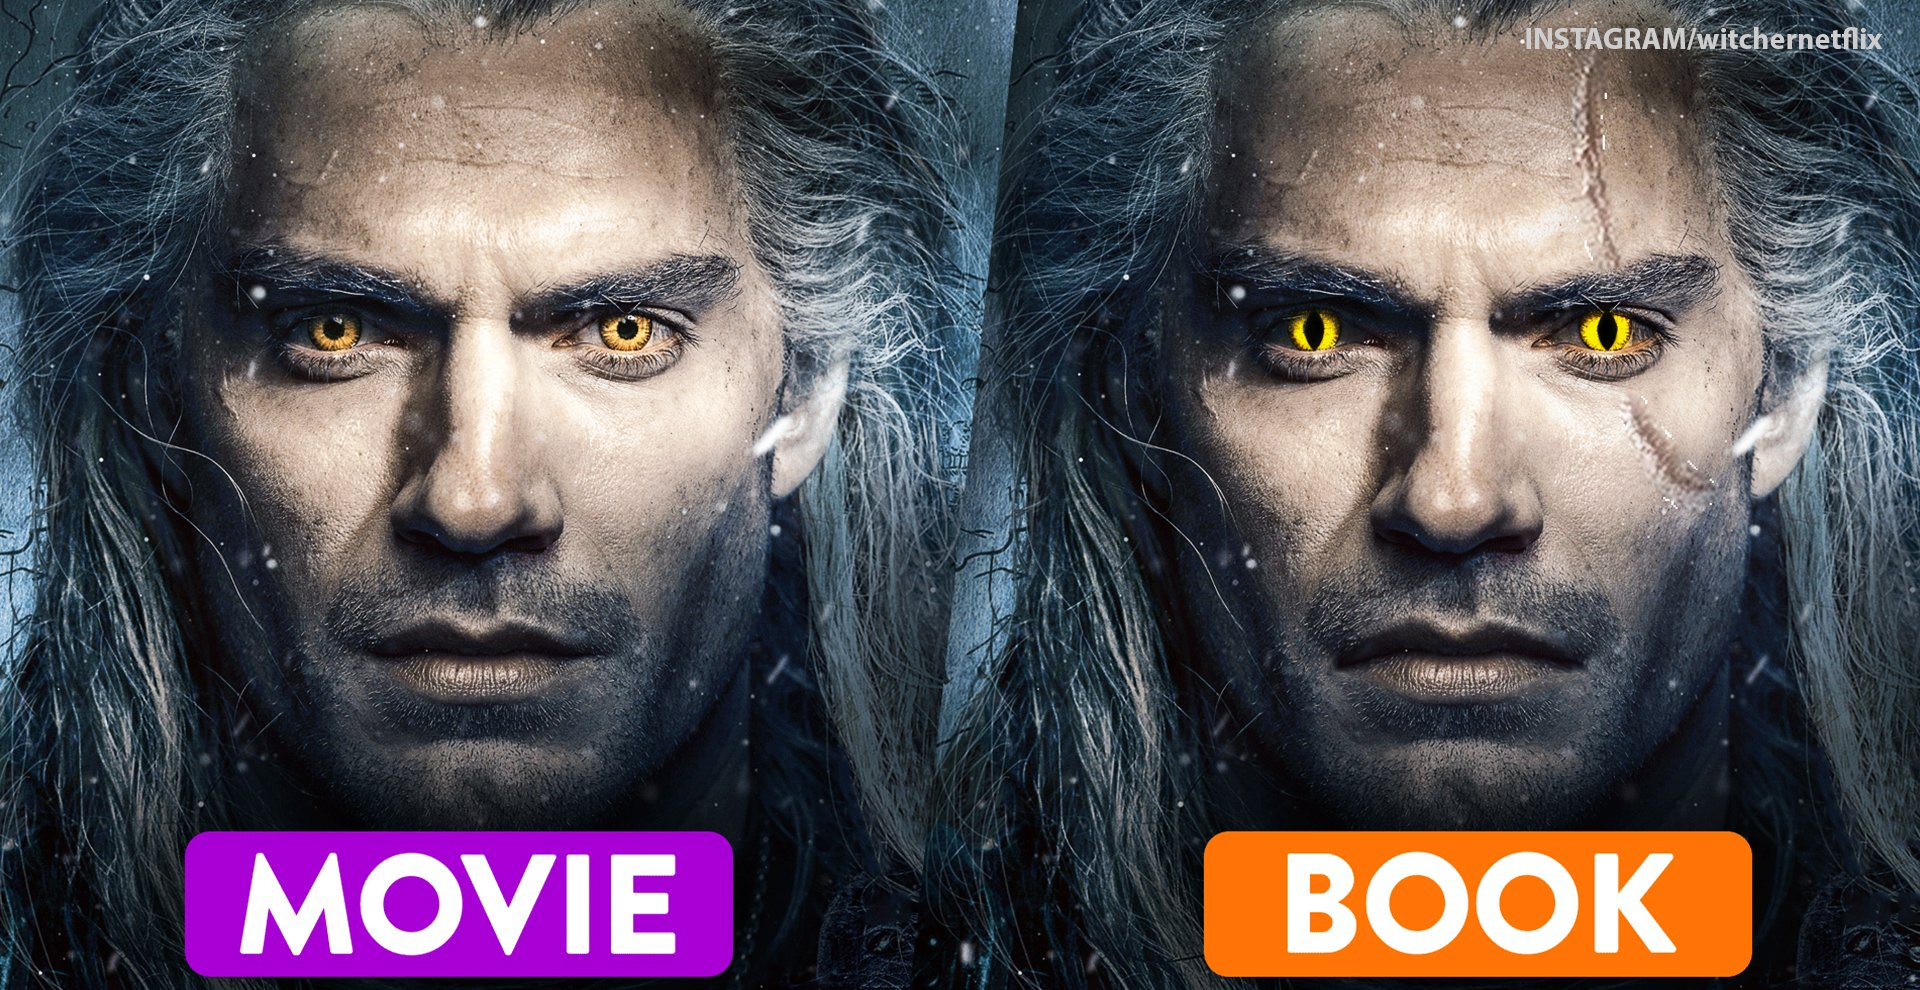 The Main Differences Between The Witcher Books And Netflix TV Show